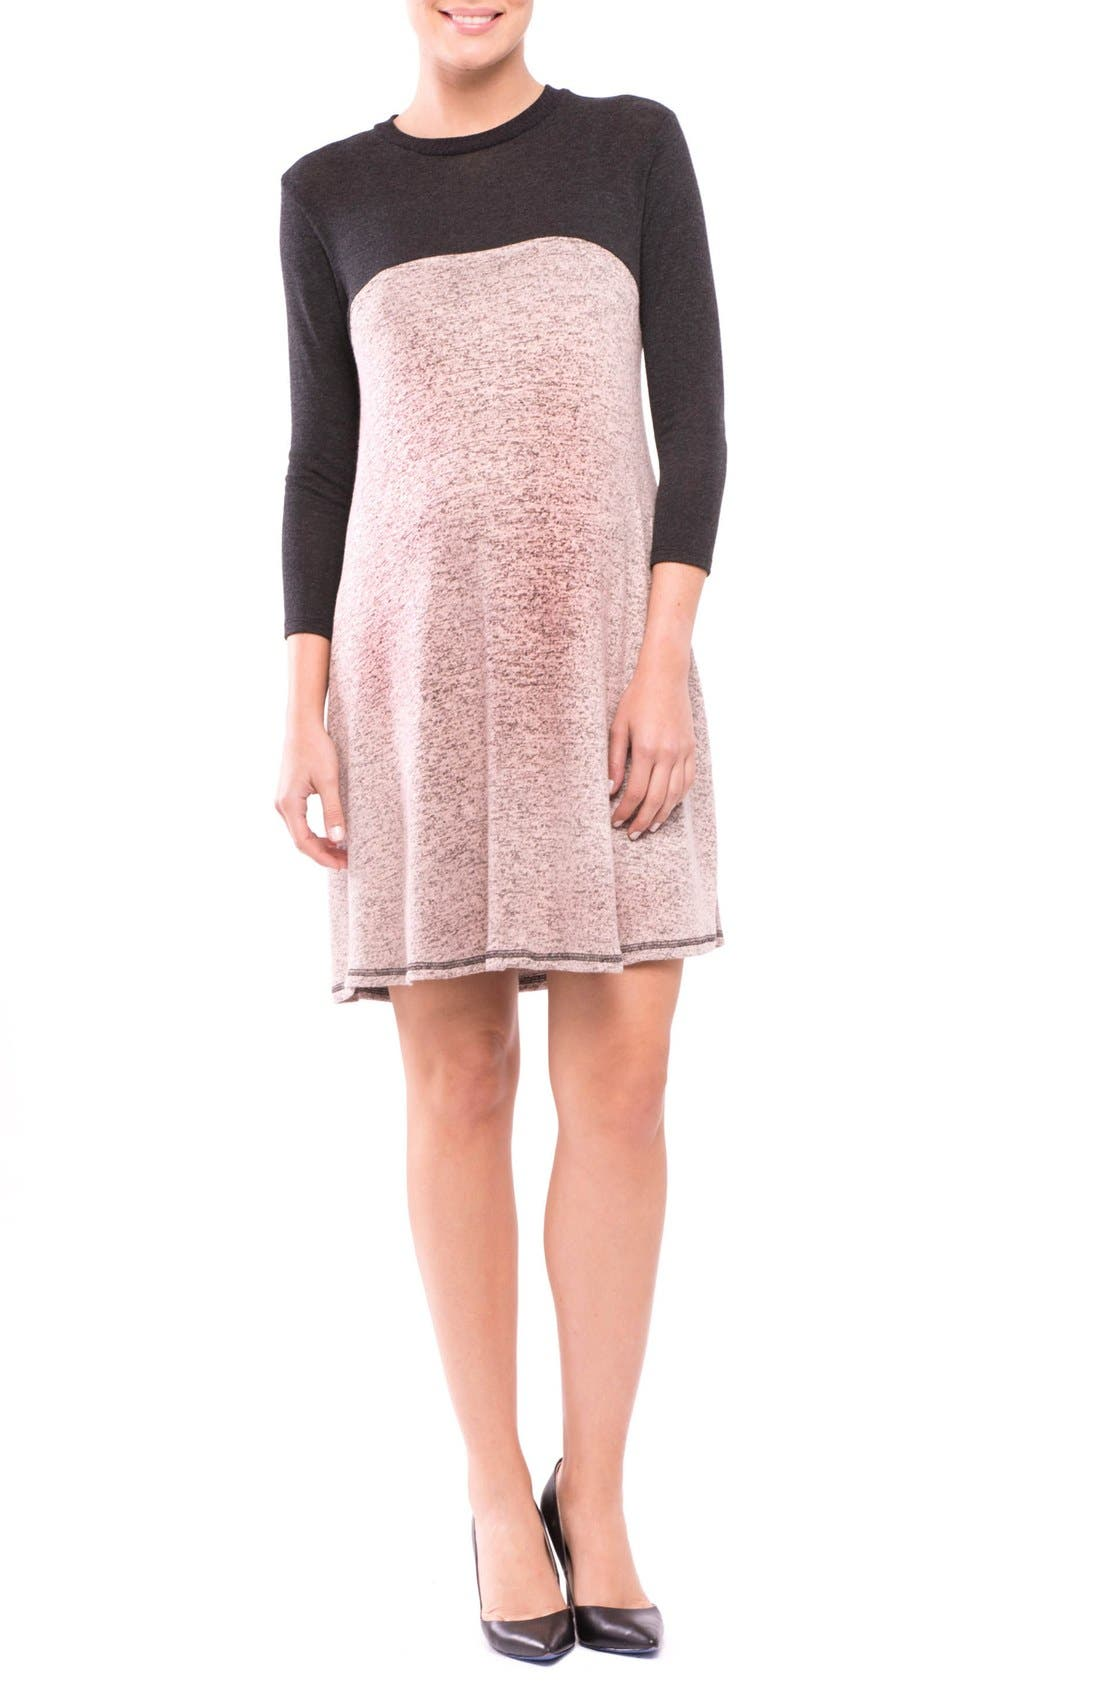 Paola Maternity Sweater Dress,                             Main thumbnail 1, color,                             CHARCOAL/ ROSE